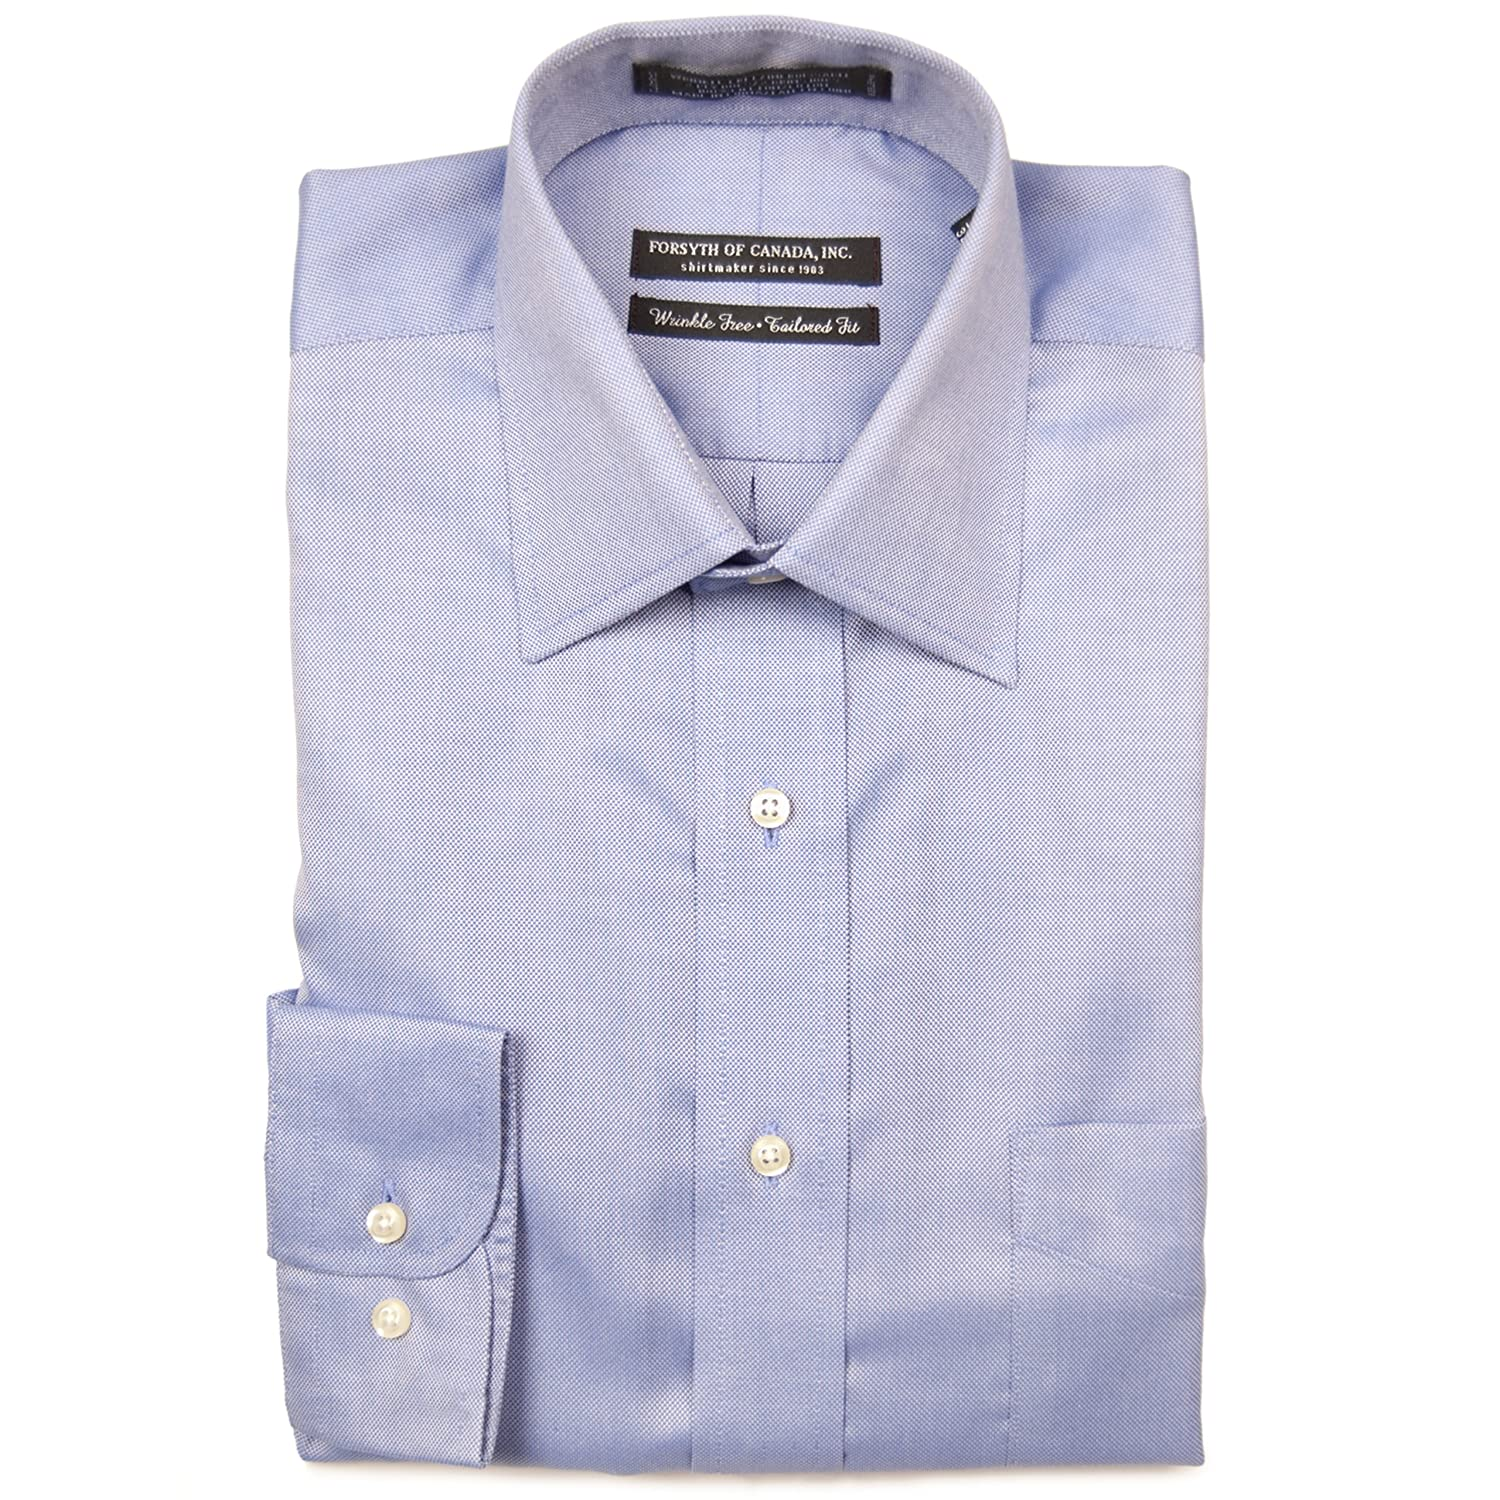 Forsyth Tailored Fit Spread Collar Dress Shirt At Amazon Mens